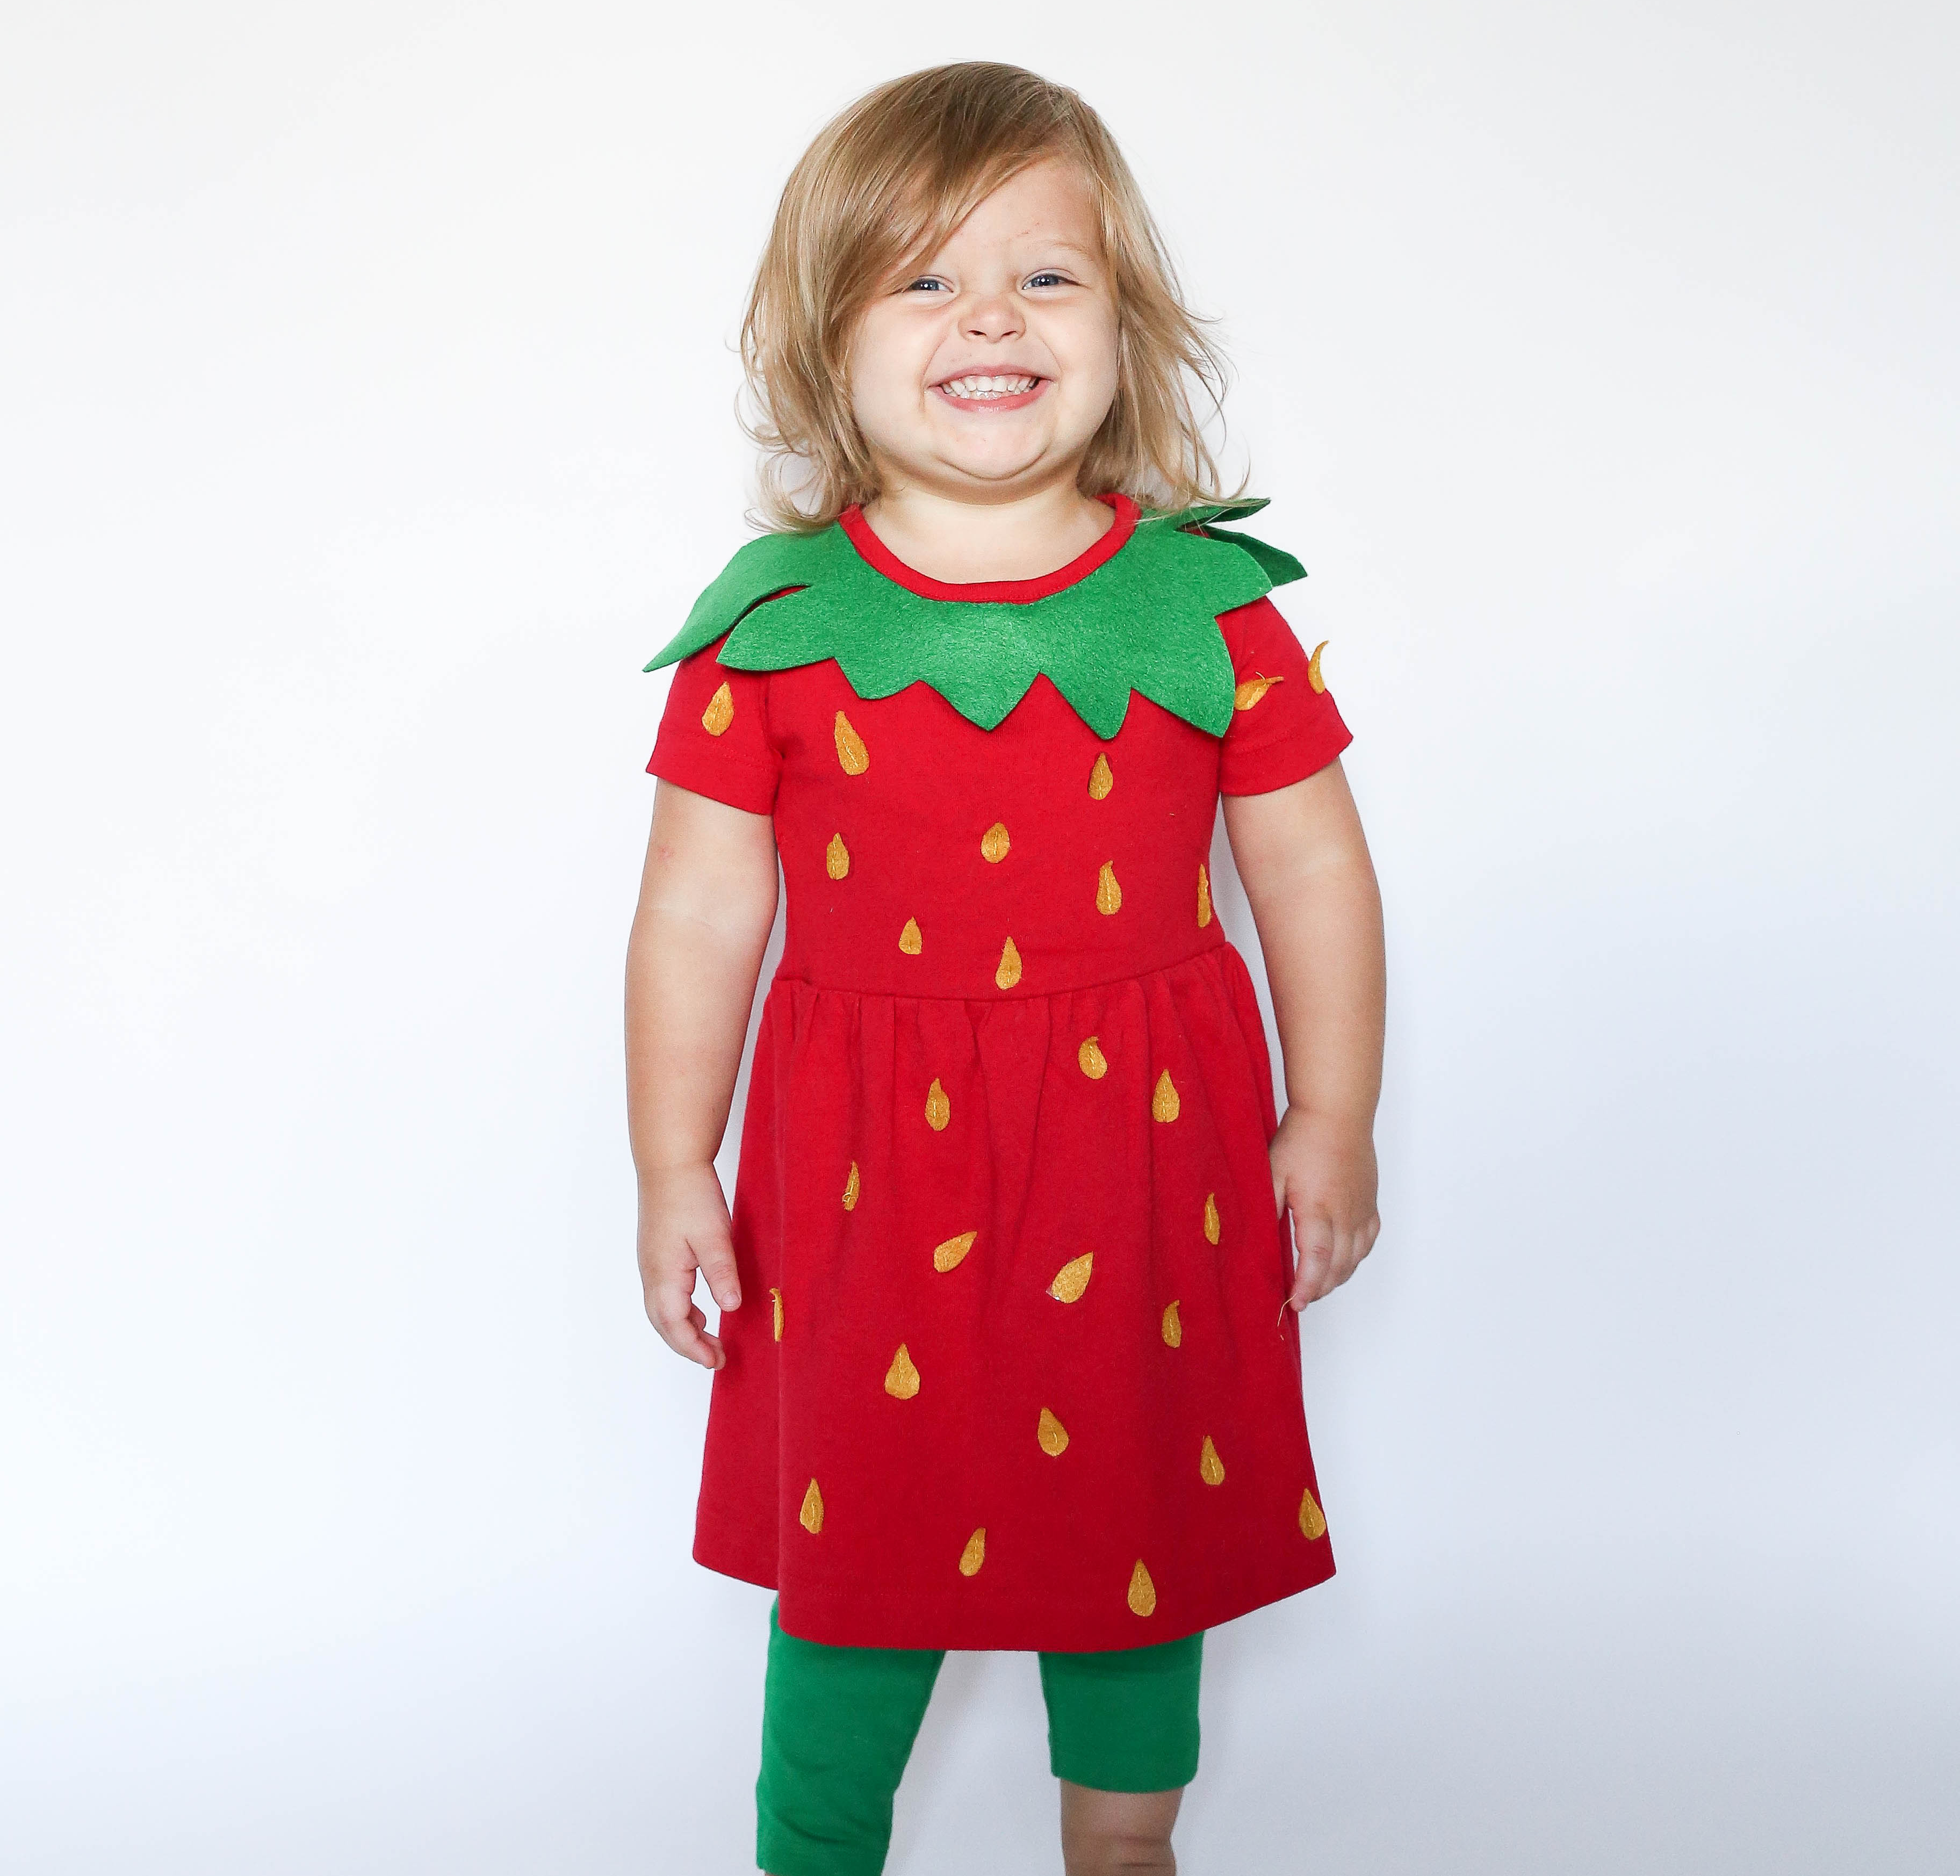 No-Sew DIY strawberry food Costume | Primary.com  sc 1 st  Primary & No-Sew DIY Strawberry Kids Costume | Primary.com